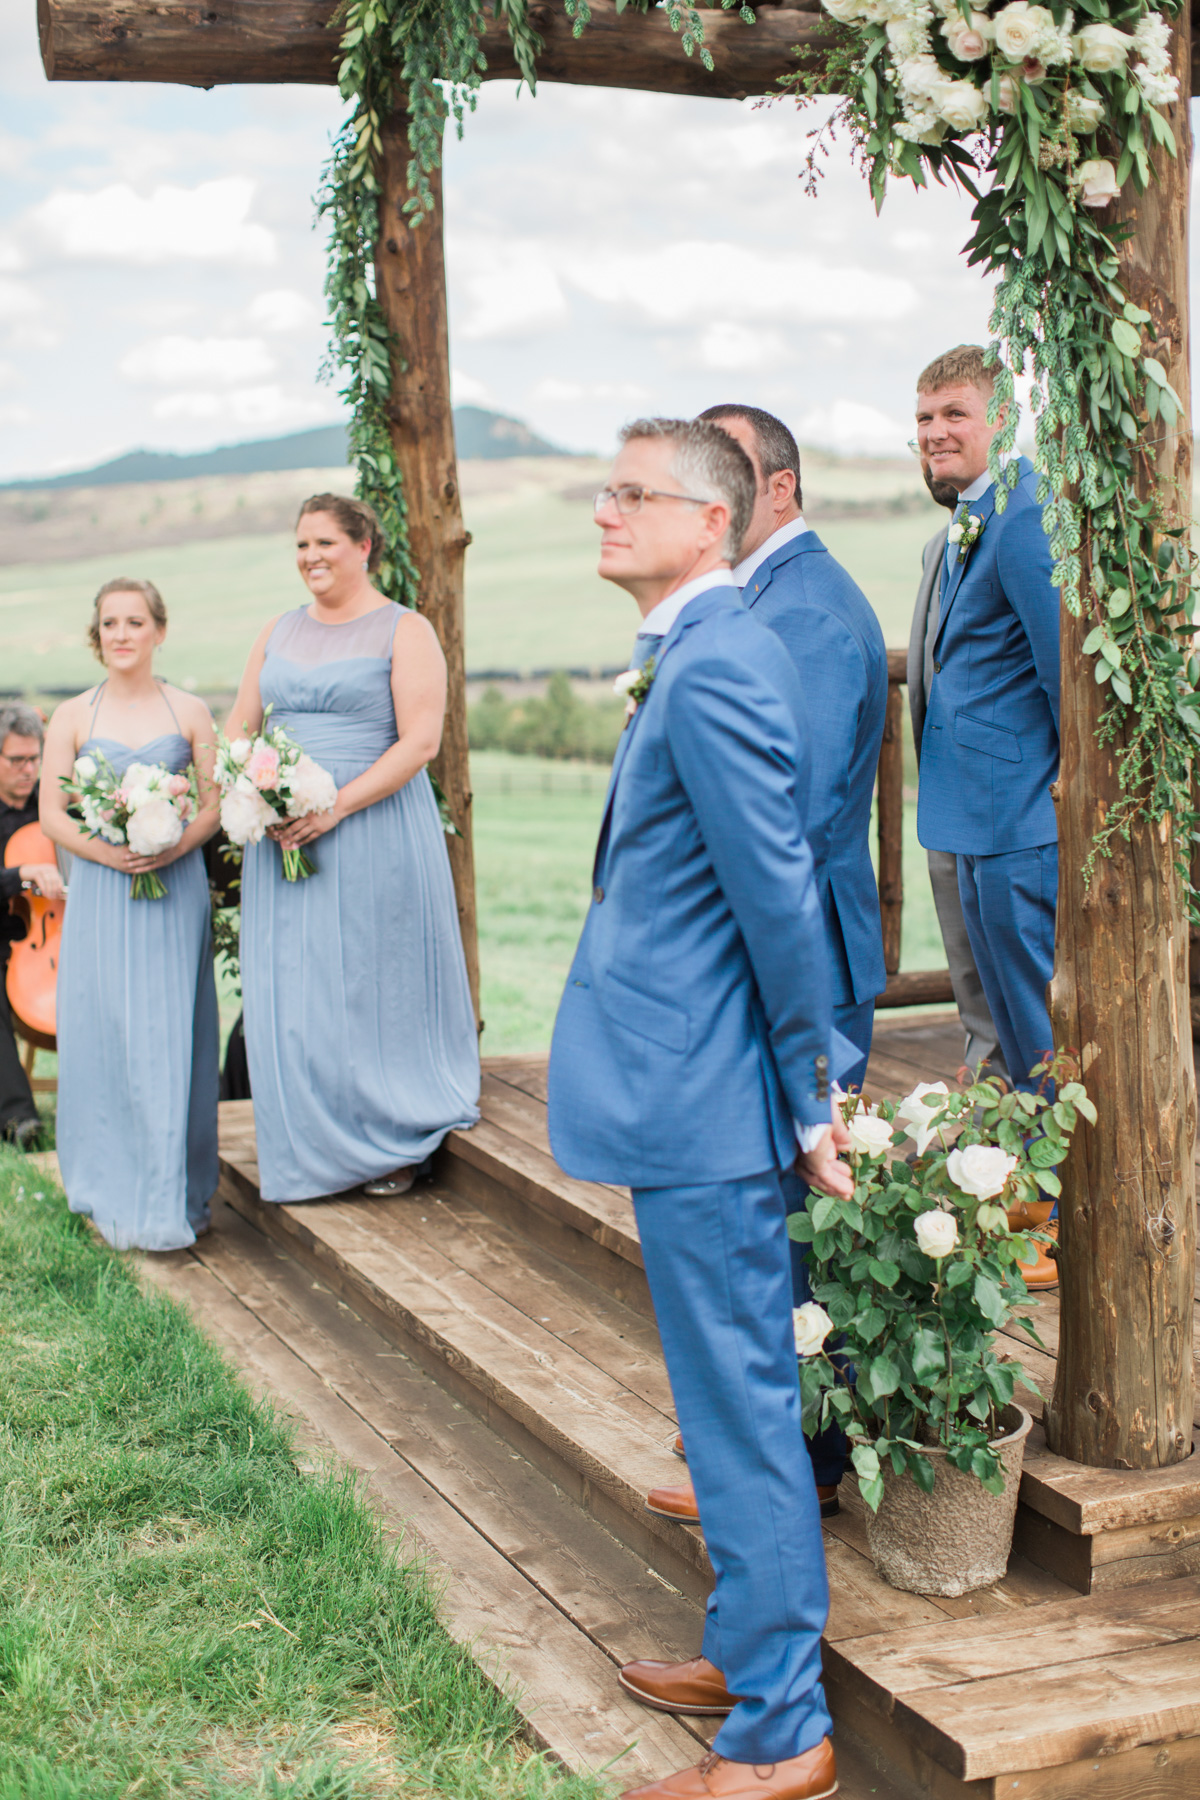 Spruce Mauntain Ranch Wedding Photographer0006.jpg